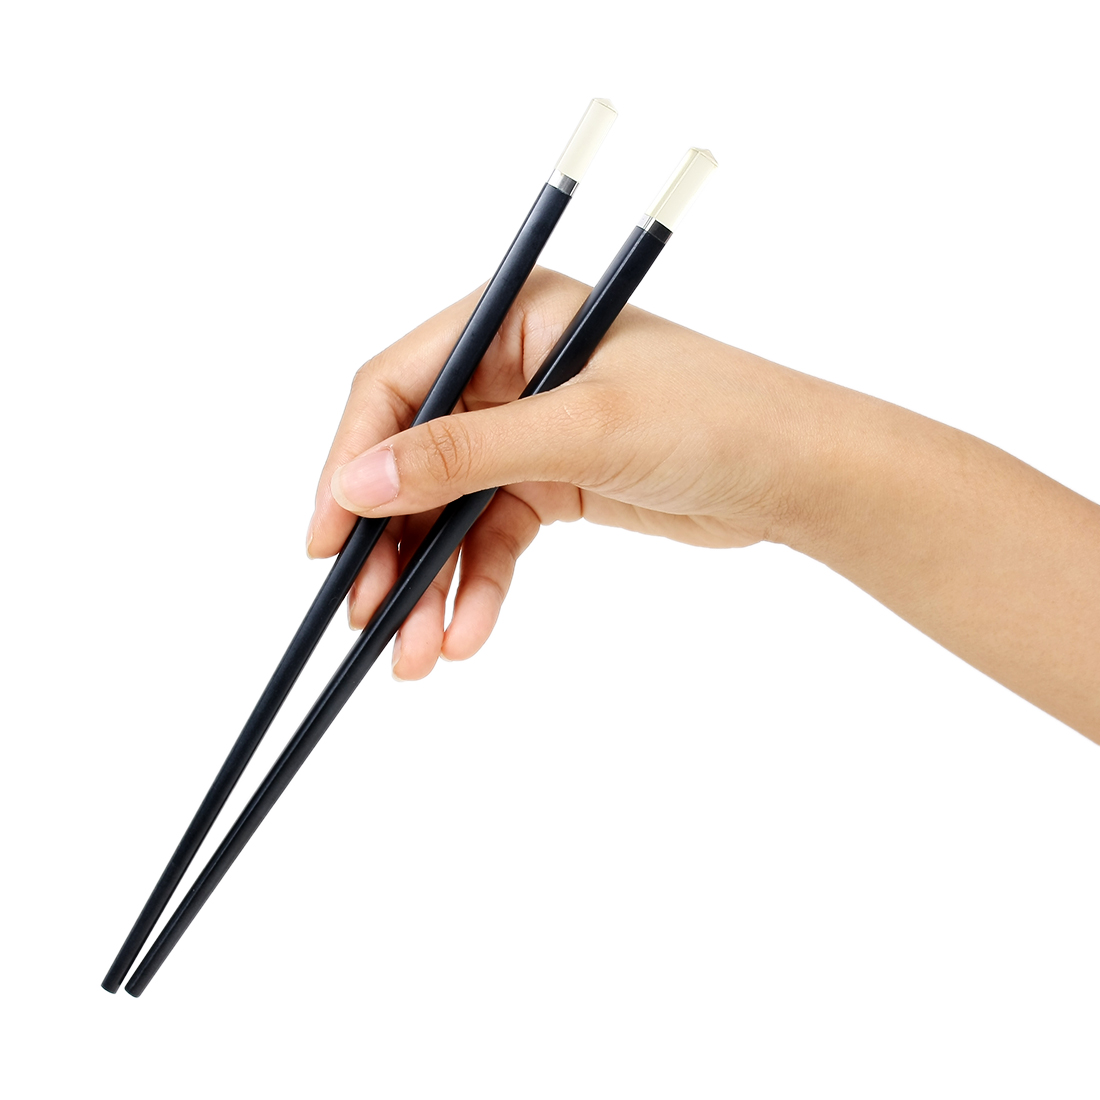 Casa-J Plastic Chinese Kitchen Tableware Chopsticks Pair 24.5cm Length